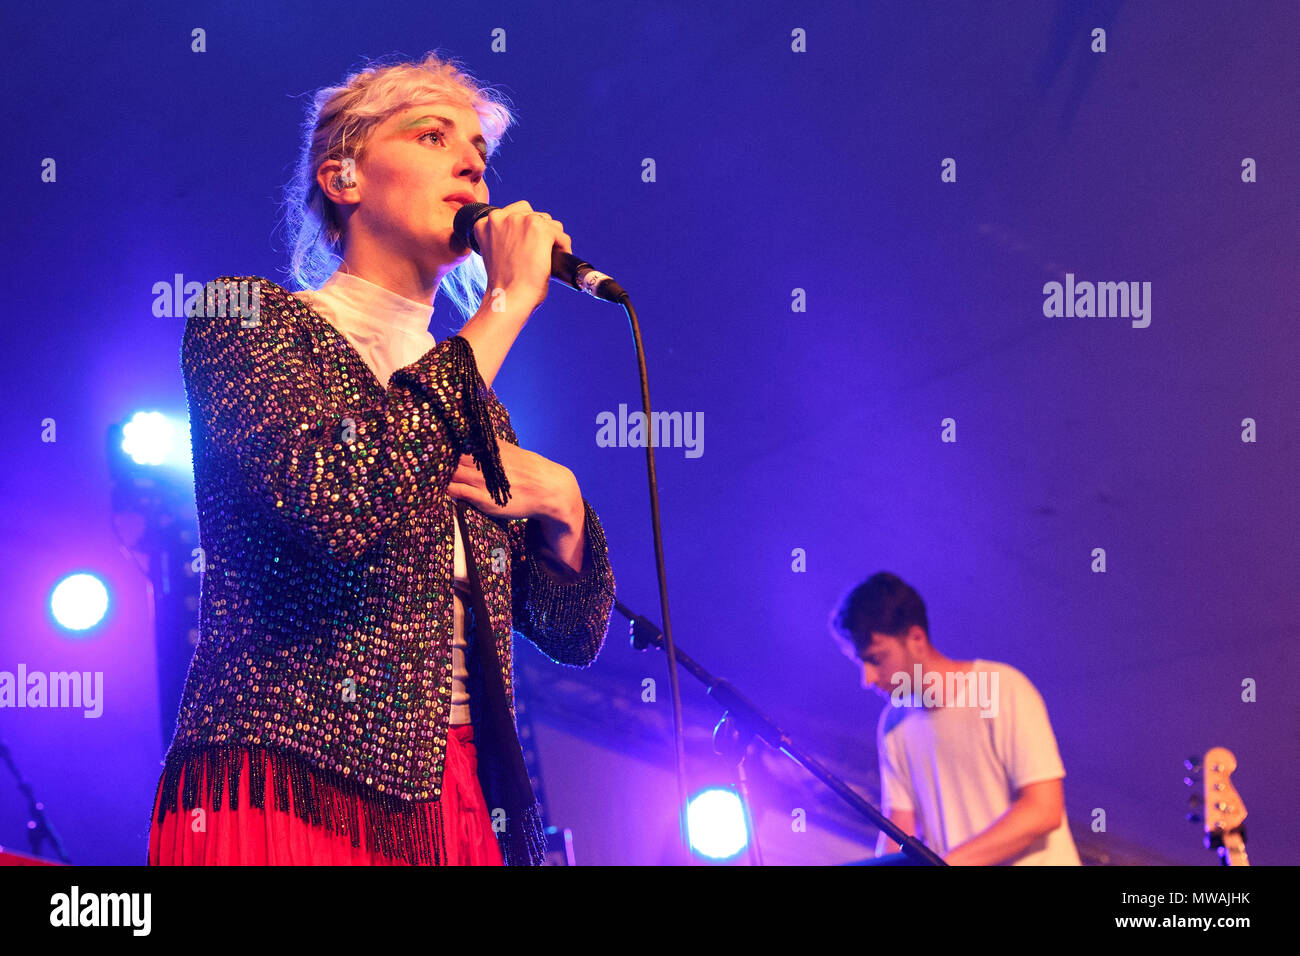 Blythe Pepino live onstage with Vaults in 2016. Vaults performed a cover of One Day I'll Fly Away for the John Lewis Christmas advertisement and released one album, Caught in Still Life, in 2016 before splitting in May 2017. Blythe Pepino later went on to perform with Mesadorm. - Stock Image